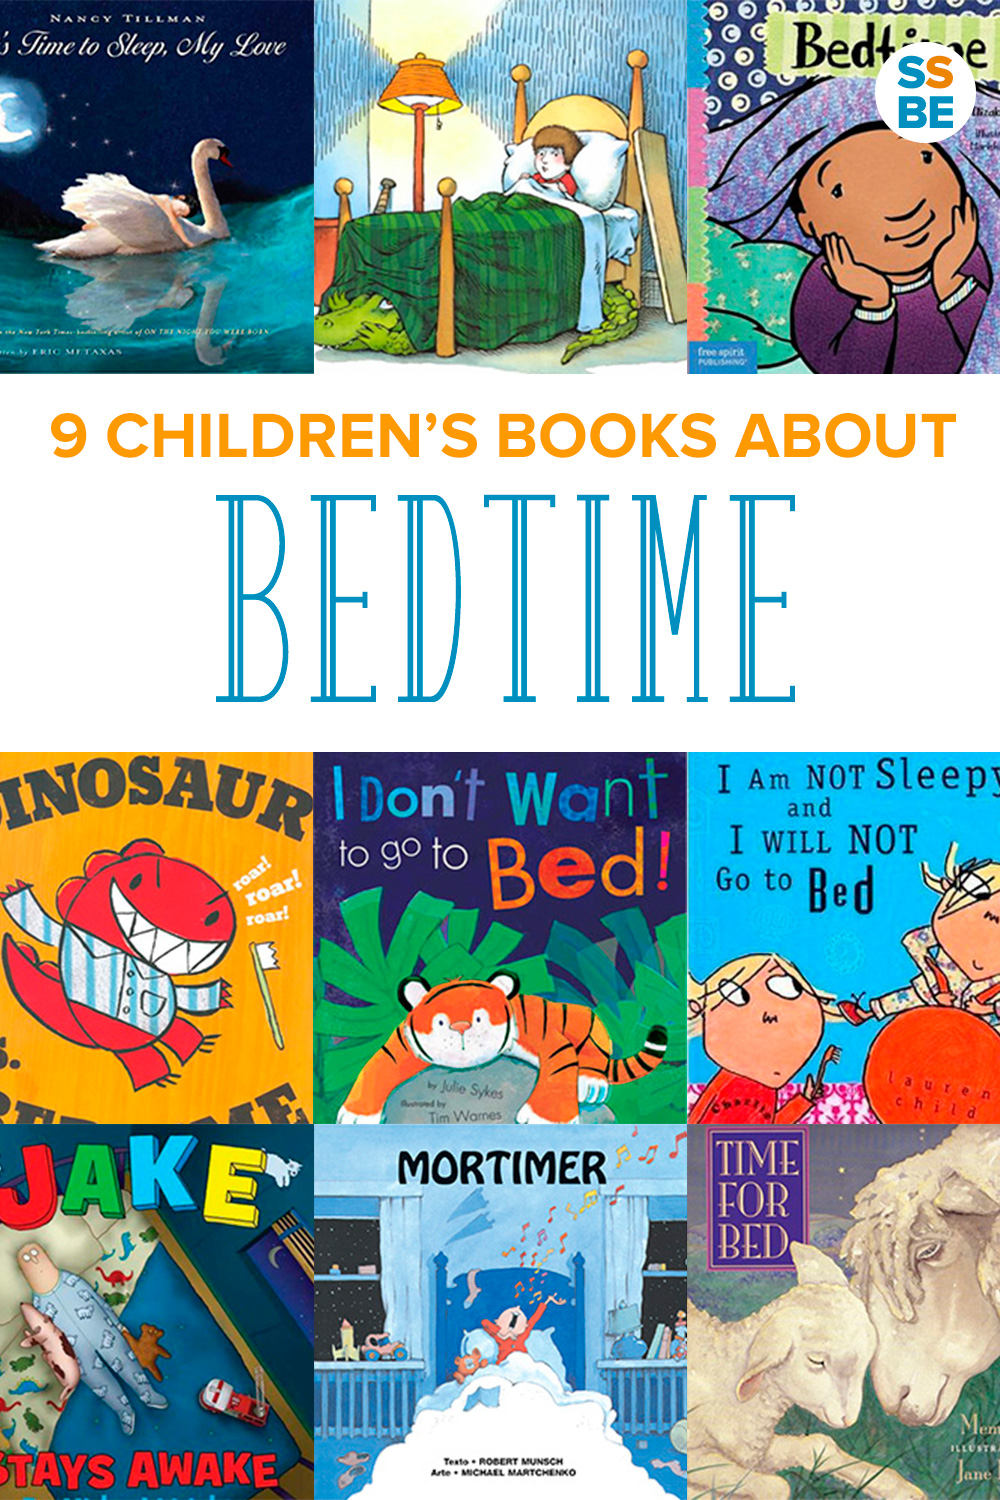 Having trouble getting the kids sleep? Going to bed can be a smooth routine with the help of these favorite children's bedtime books.